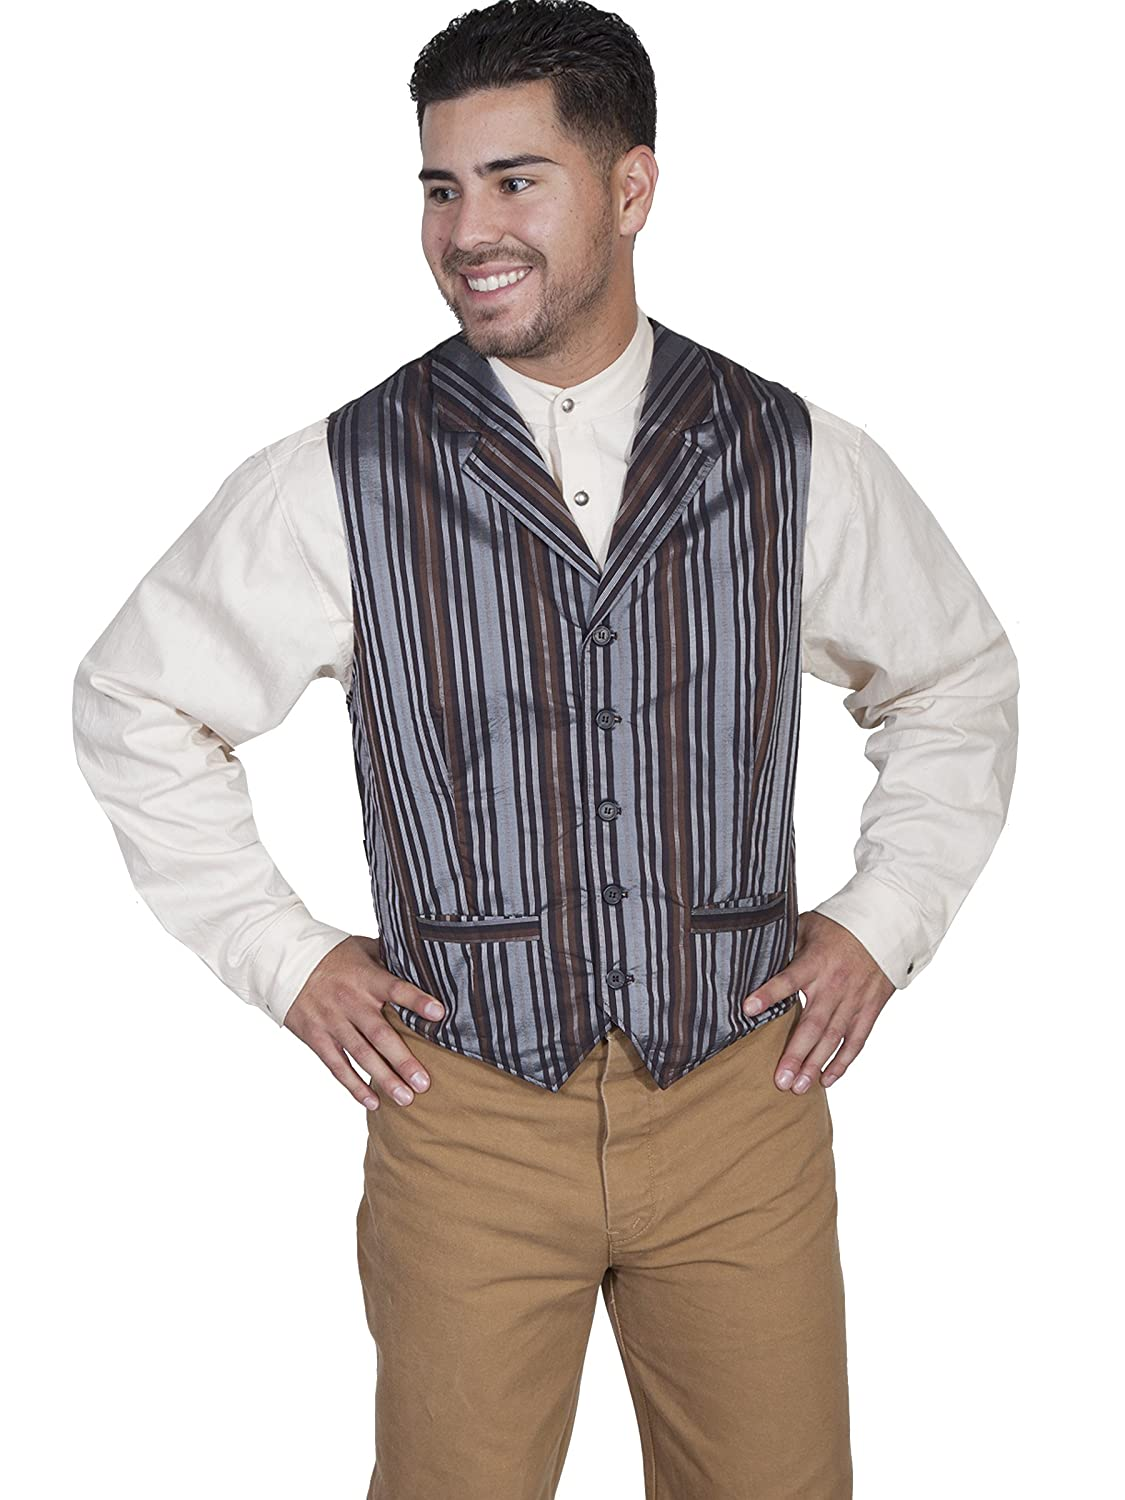 Men's Vintage Inspired Vests Scully RW268 Mens Stripe Vest $55.05 AT vintagedancer.com